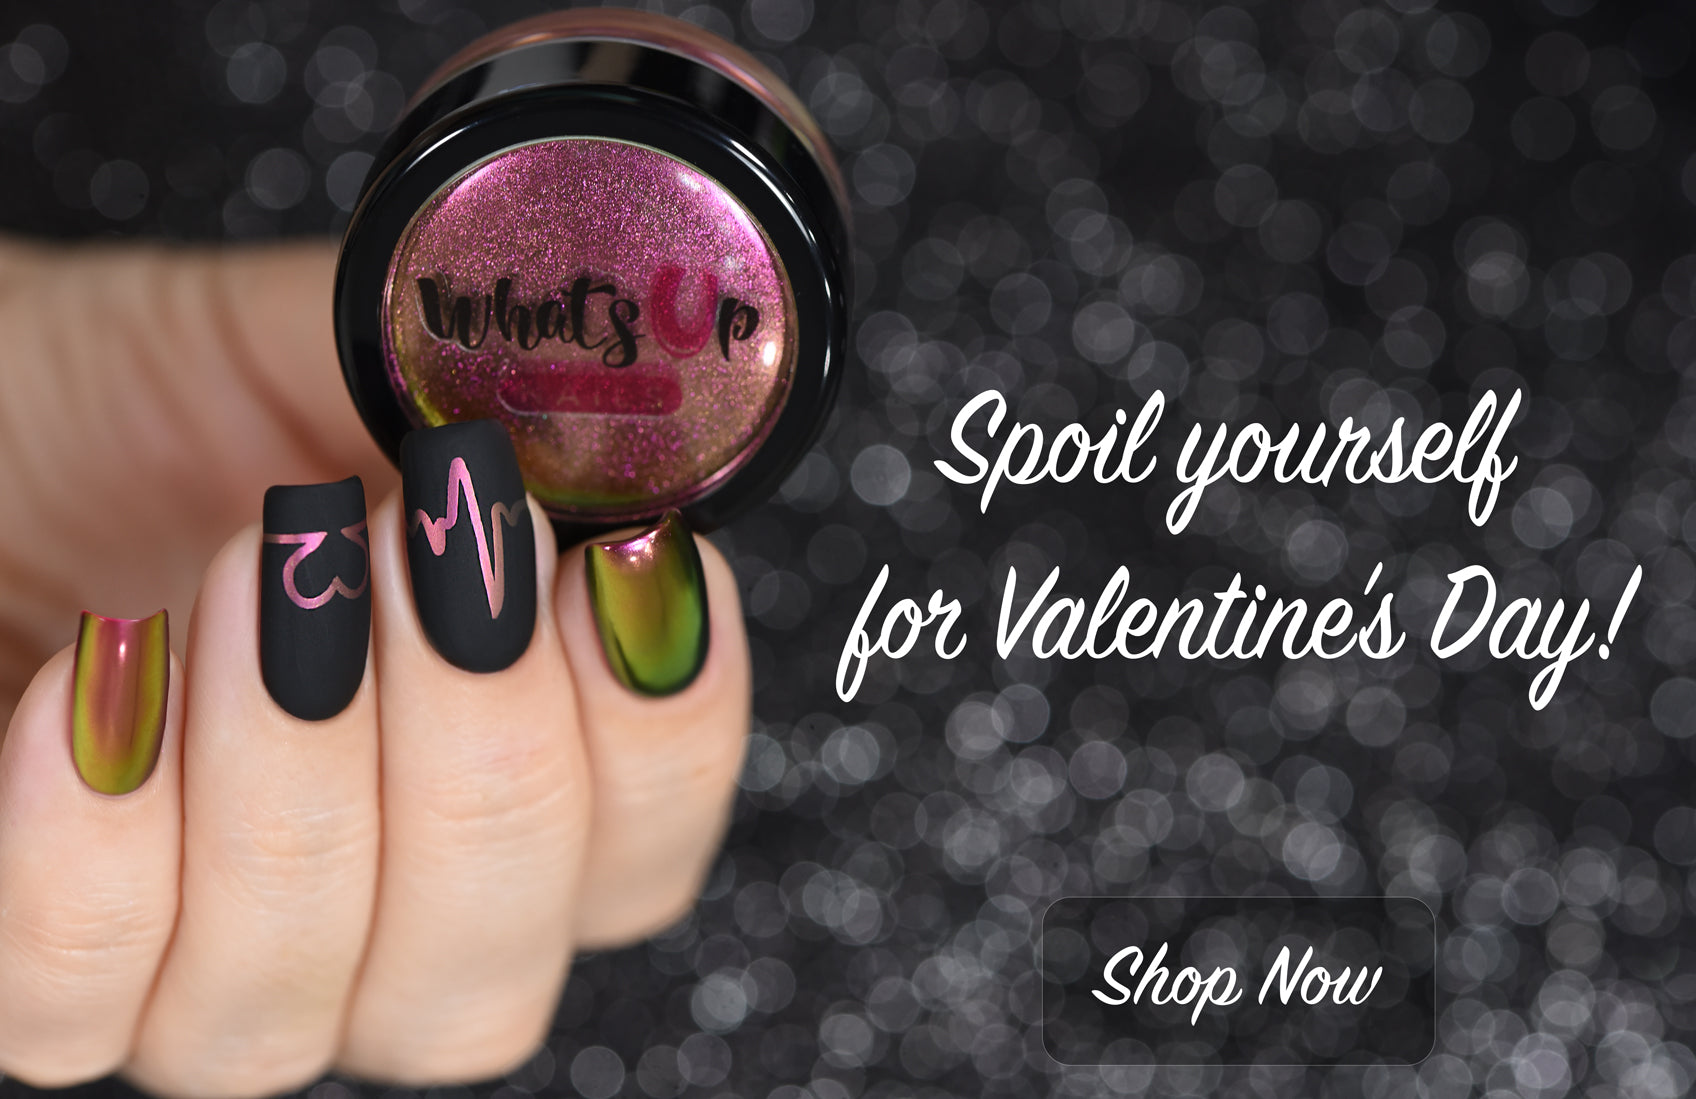 Shop Now - Valentine's Day Nnail Products